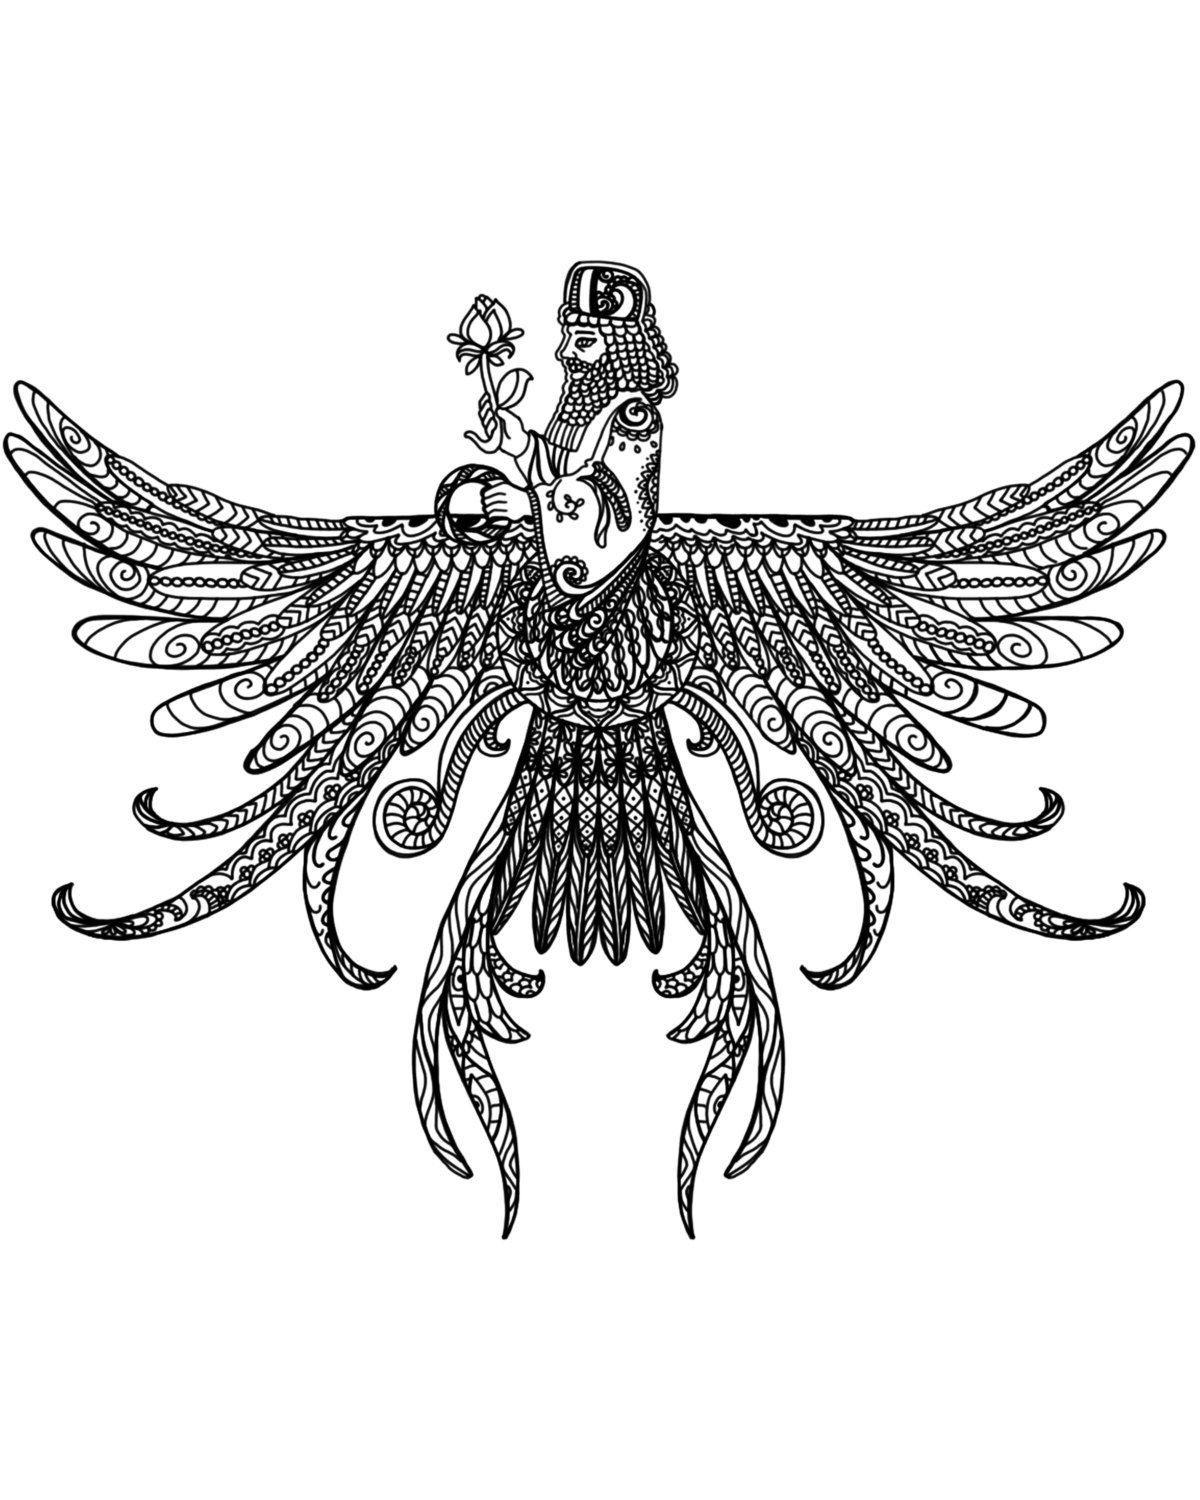 Farvahar the faravahar or better known in persian as fravahr is farvahar the faravahar or better known in persian as fravahr is one of the best known symbols of zoroastrianism the state religion of ancient biocorpaavc Image collections